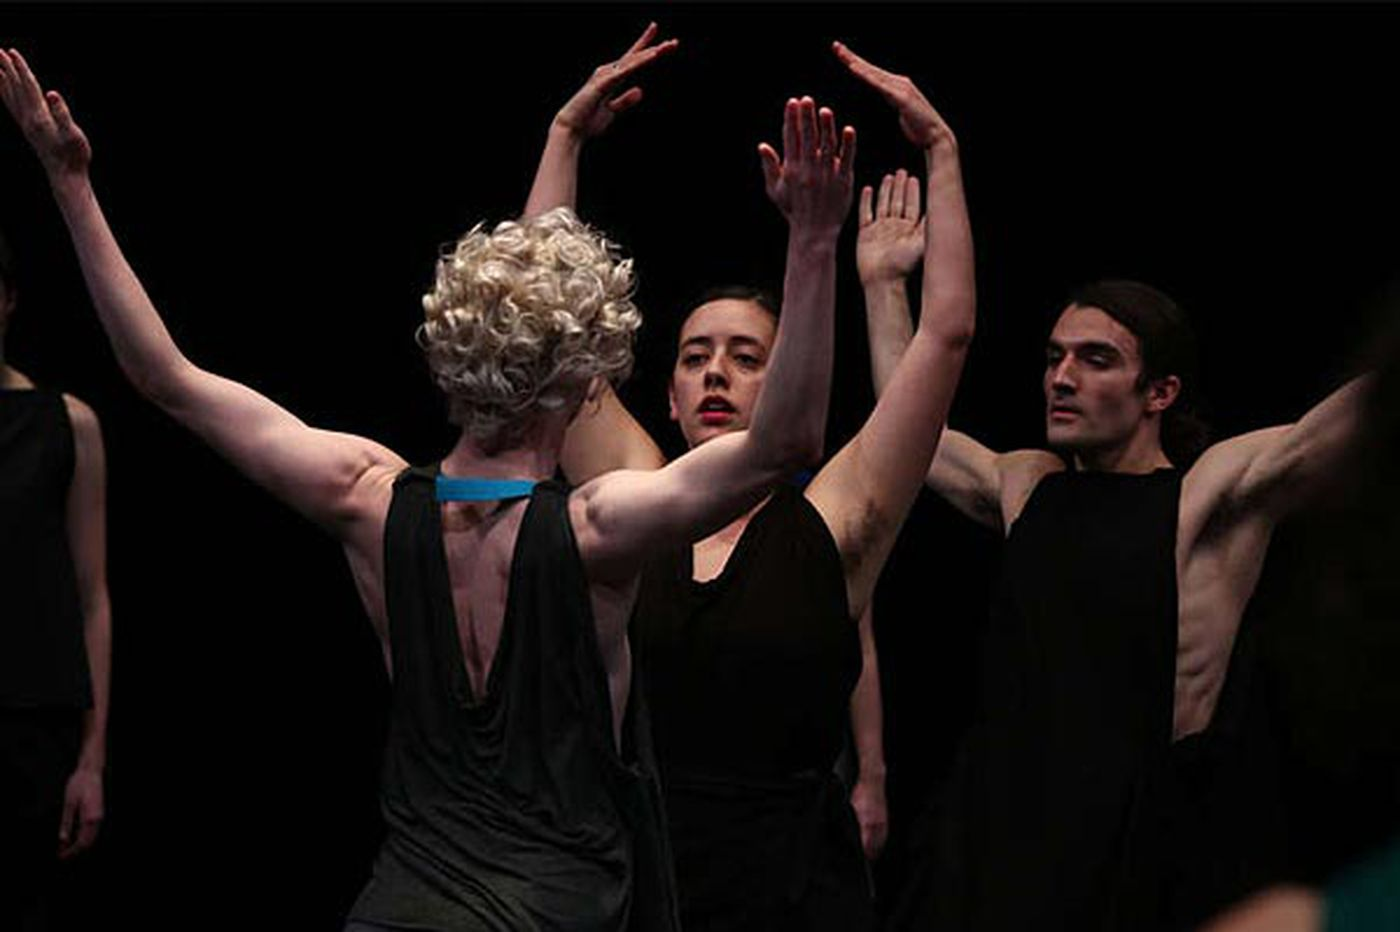 Tere O'Connor's 'Bleed' is, yes, a convoluted dance